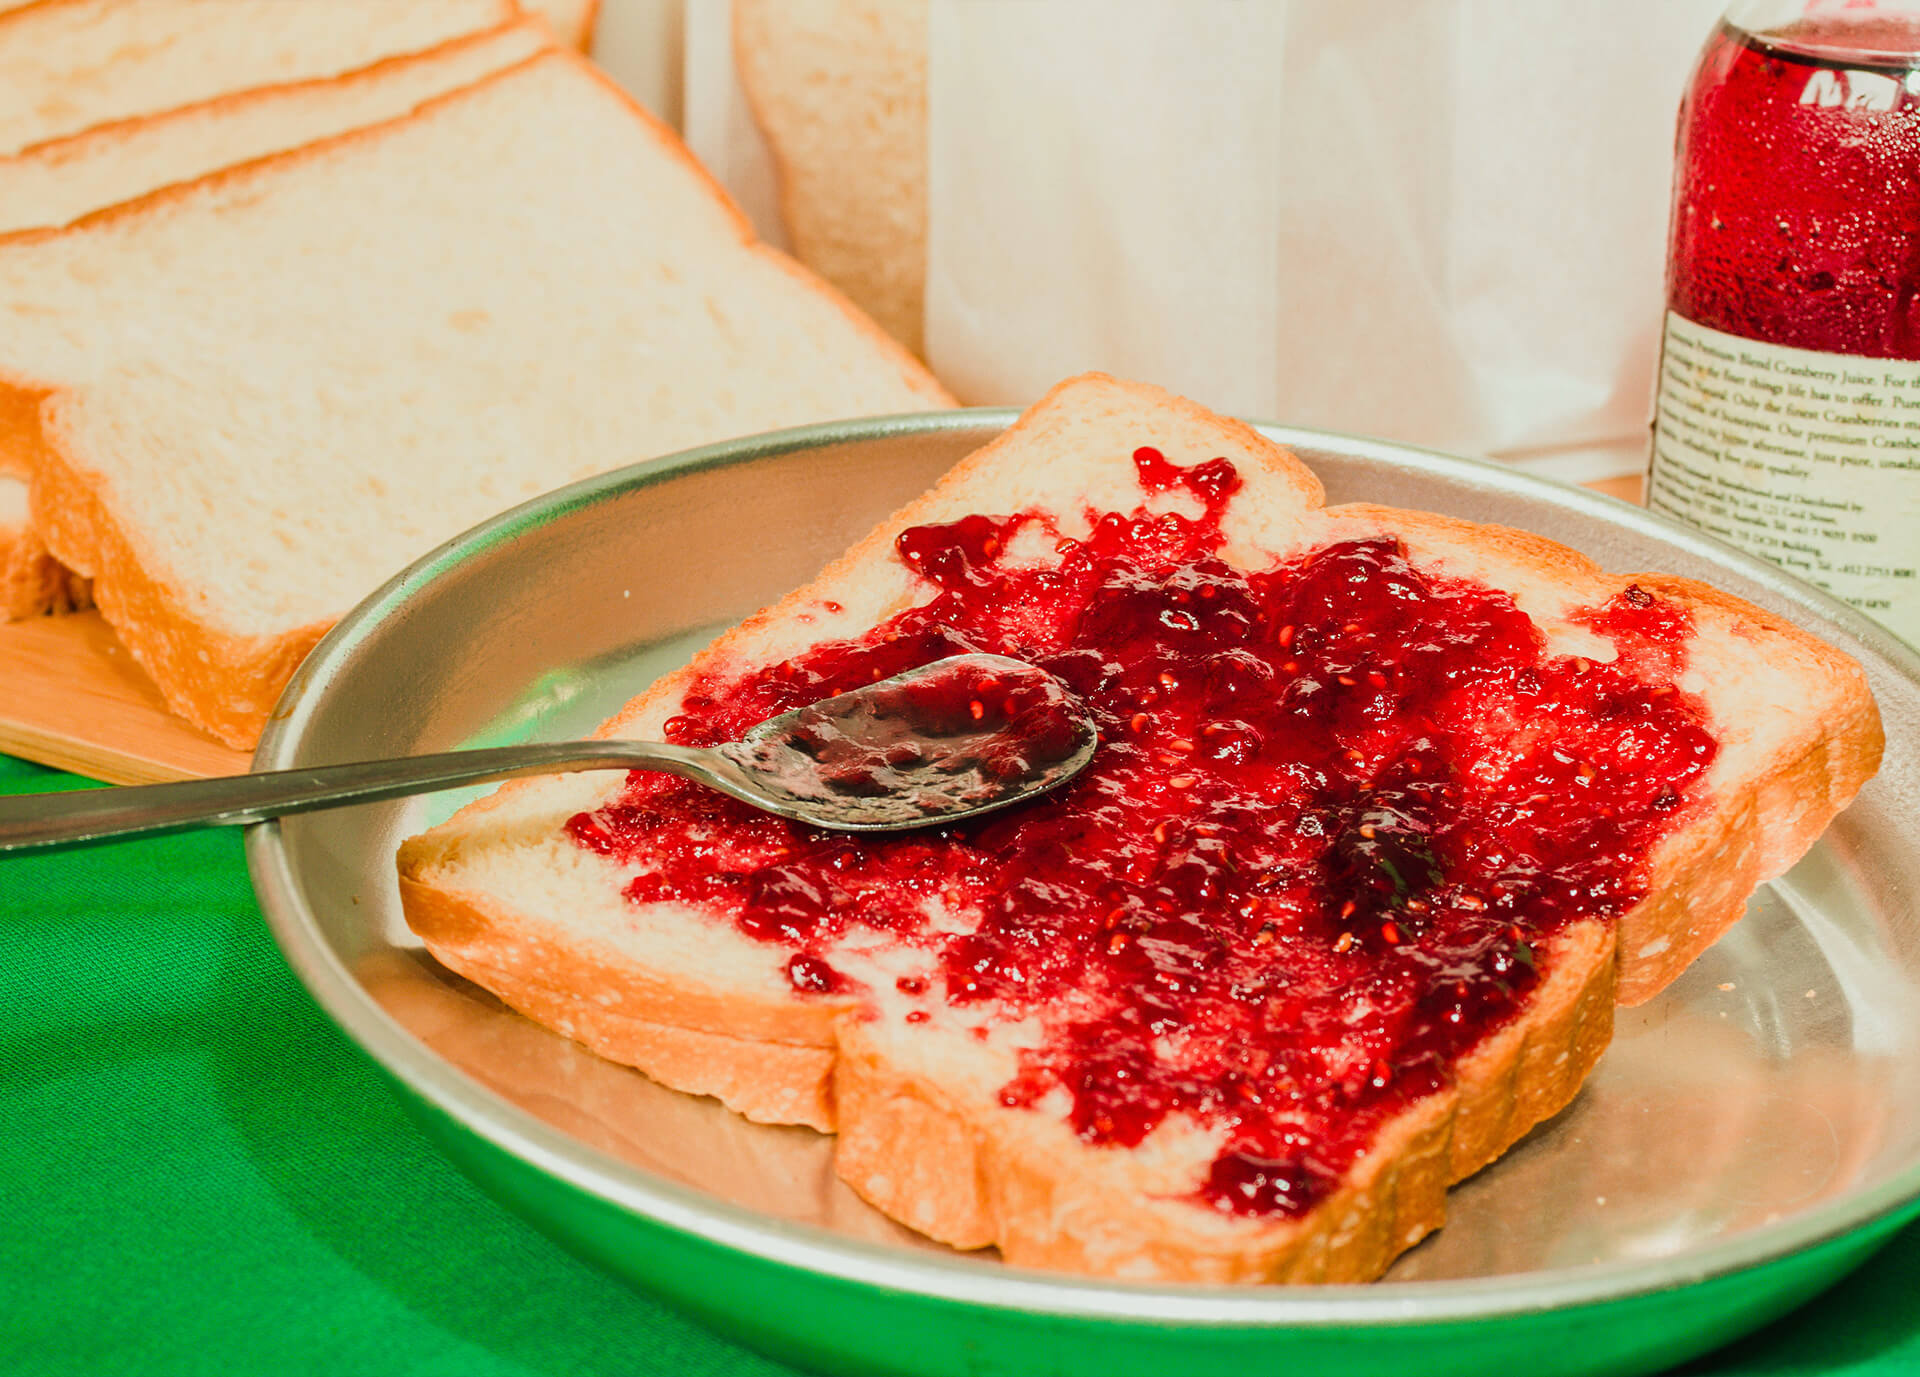 Breakfast toast with jam and milk close up shot